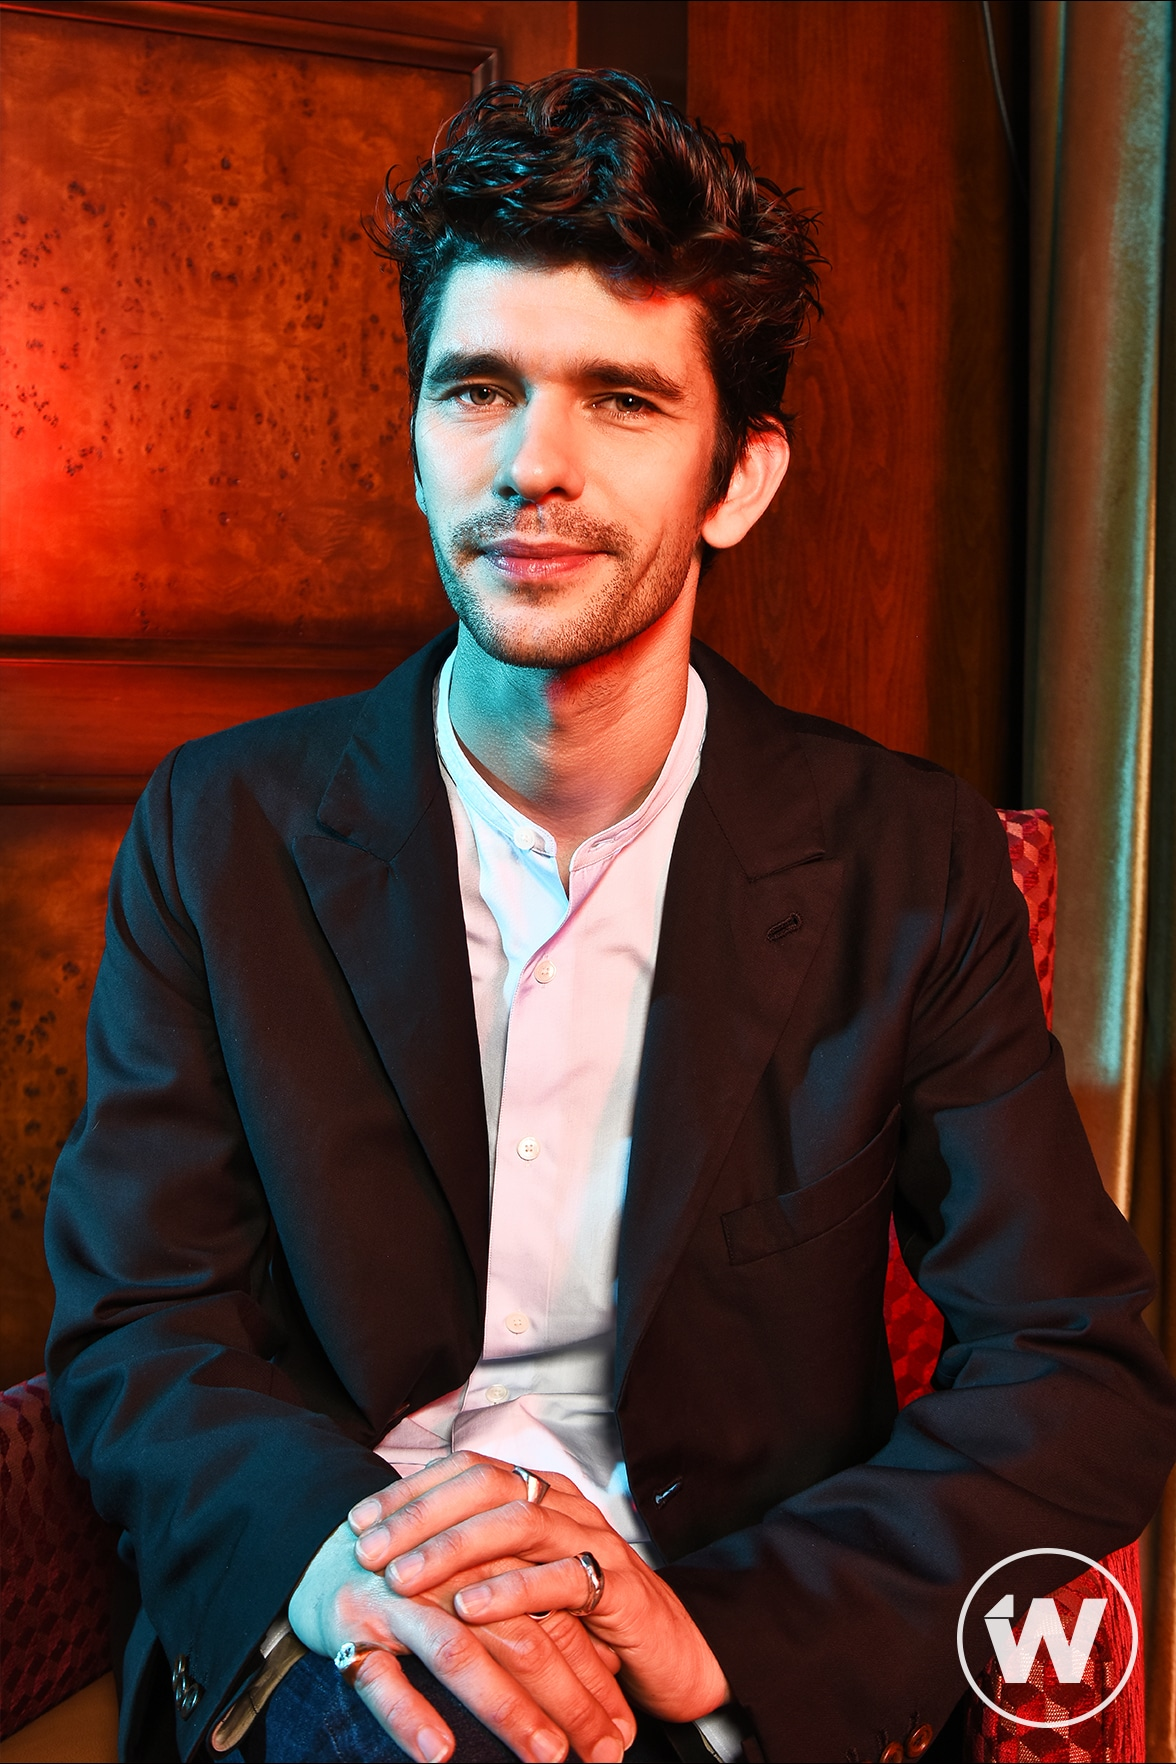 'Mary Poppins Returns' star Ben Whishaw